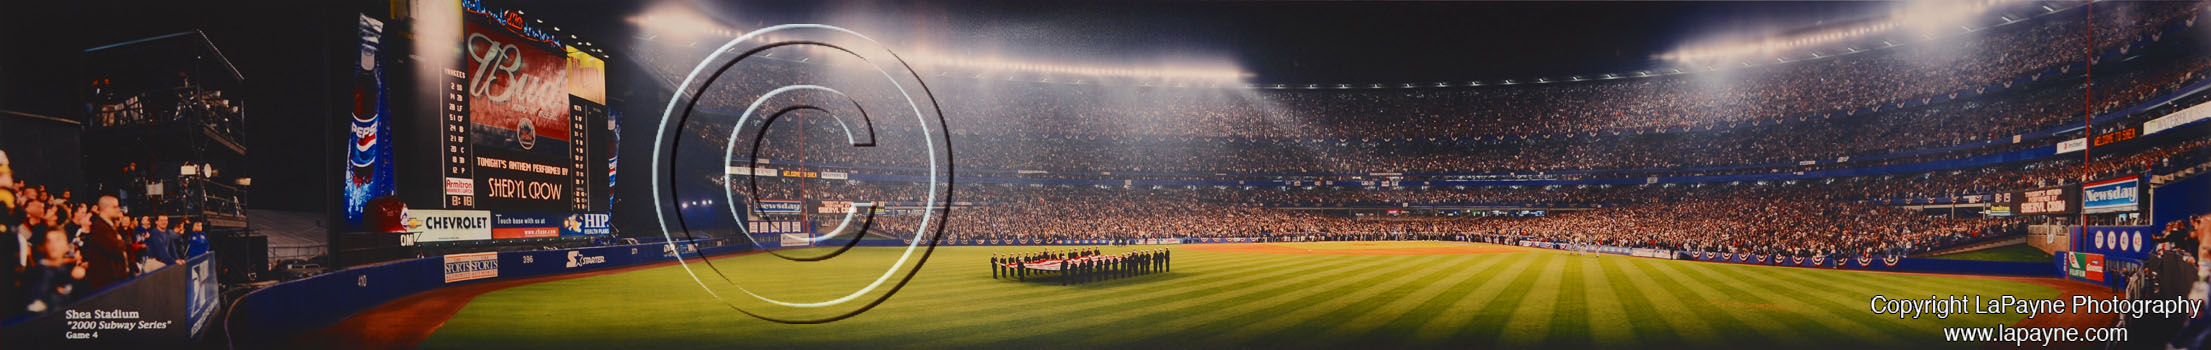 Shea Stadium | 2000 World Series - Opening Ceremonies